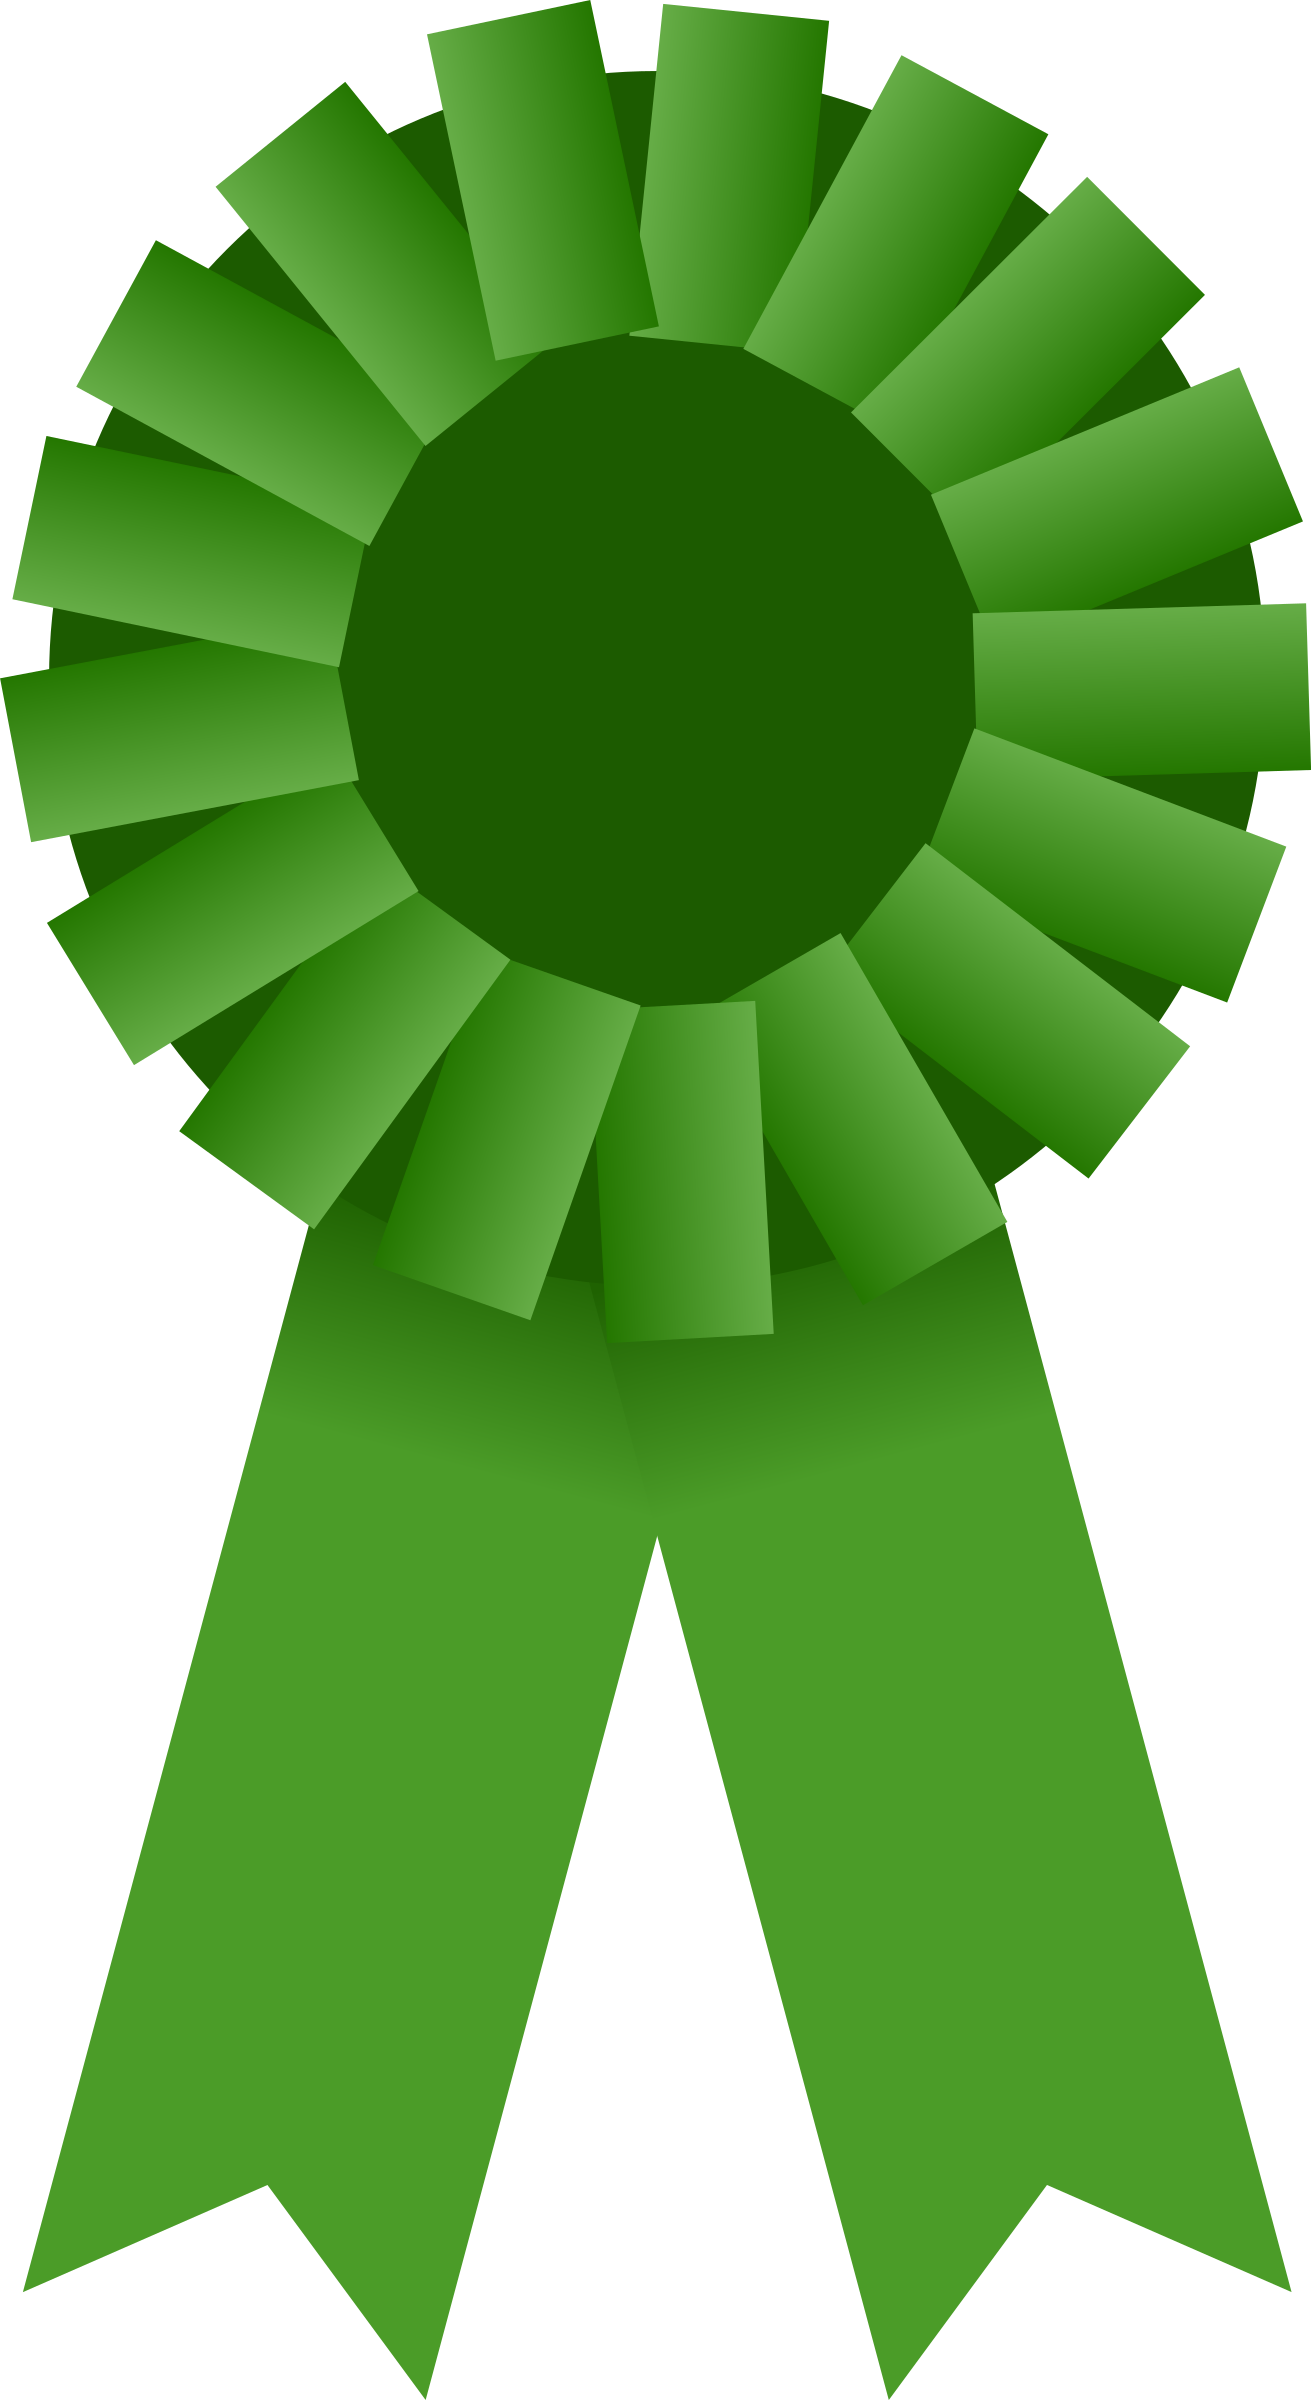 image free download Awards clipart. Award ribbon green big